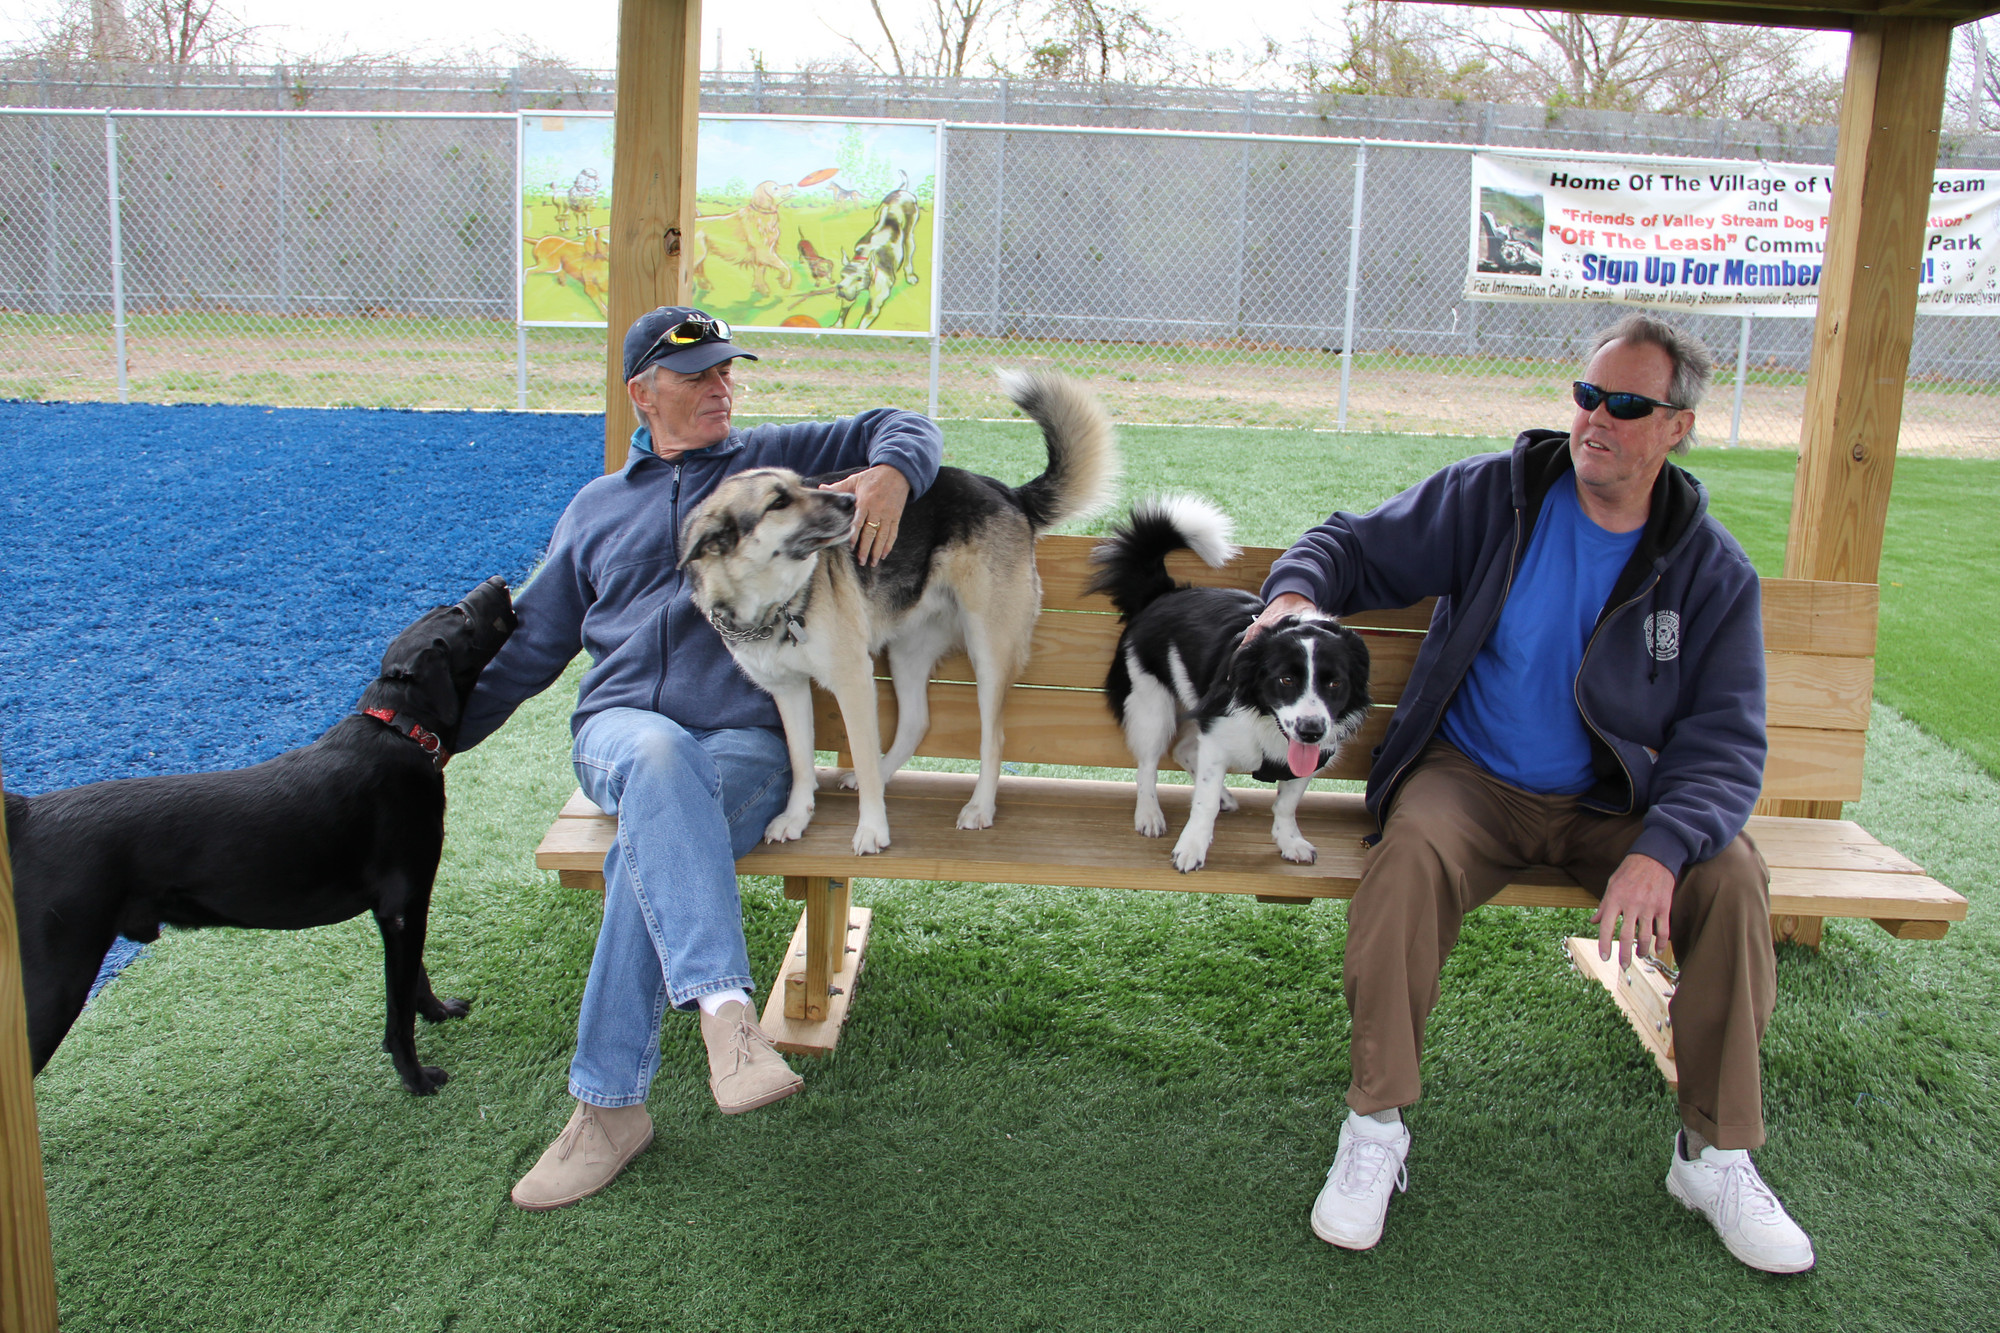 John McSwiggan left with Black Lab Beau and Husky Shepard Terrier Lady sits with David Walsh and Lola a Border Collie Mix at the Valley Stream Dog Park.